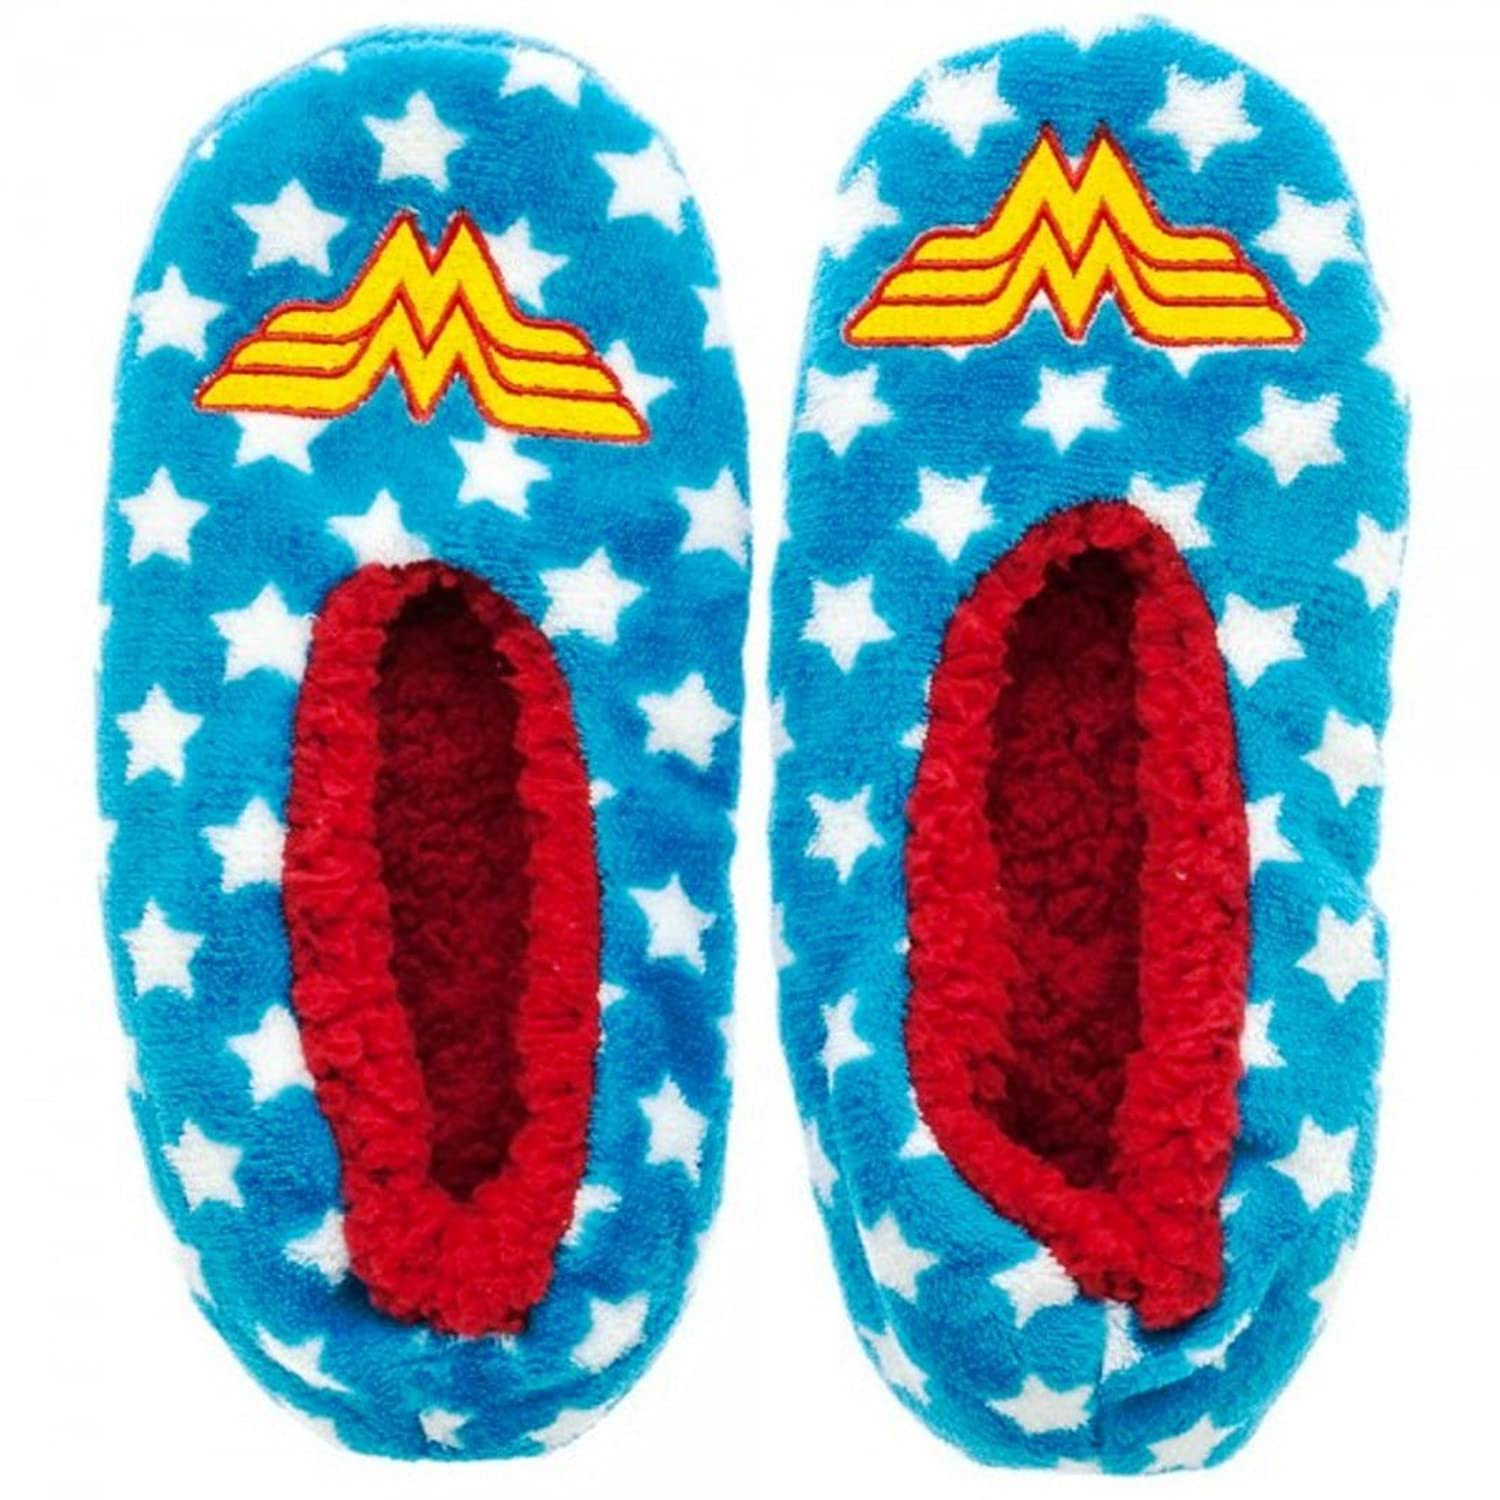 10a2079e37d DC Comics Wonder Woman Stars and Logo Plush Cozy Slippers 80%OFF ...